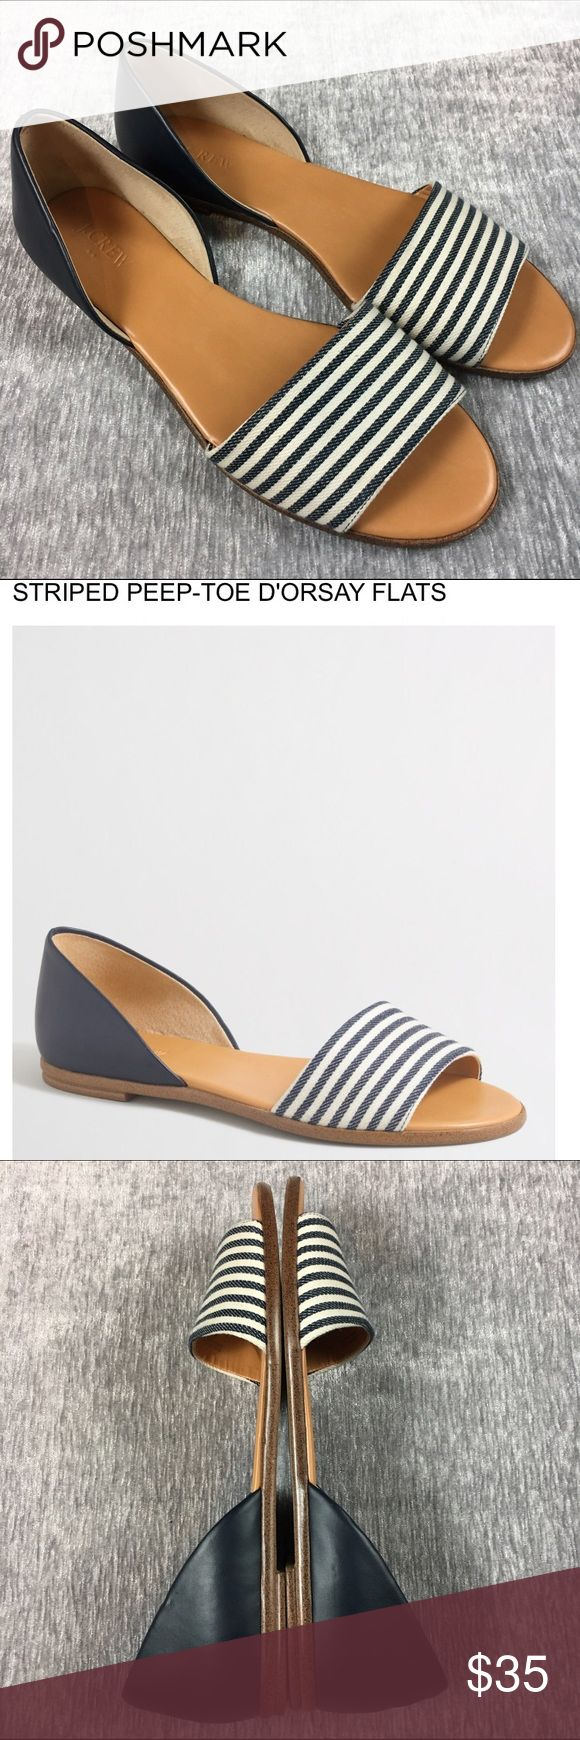 J. Crew Peep Toe D'Orsay Striped Nautical Flats J. Crew Peep Toe D'orsay Style Flat Sandal in striped blue and navy. Size 10 with leather insoles and heel. Cloth covered toe slide. Amazing condition! Only worn a couple times outside. J. Crew Shoes Sandals